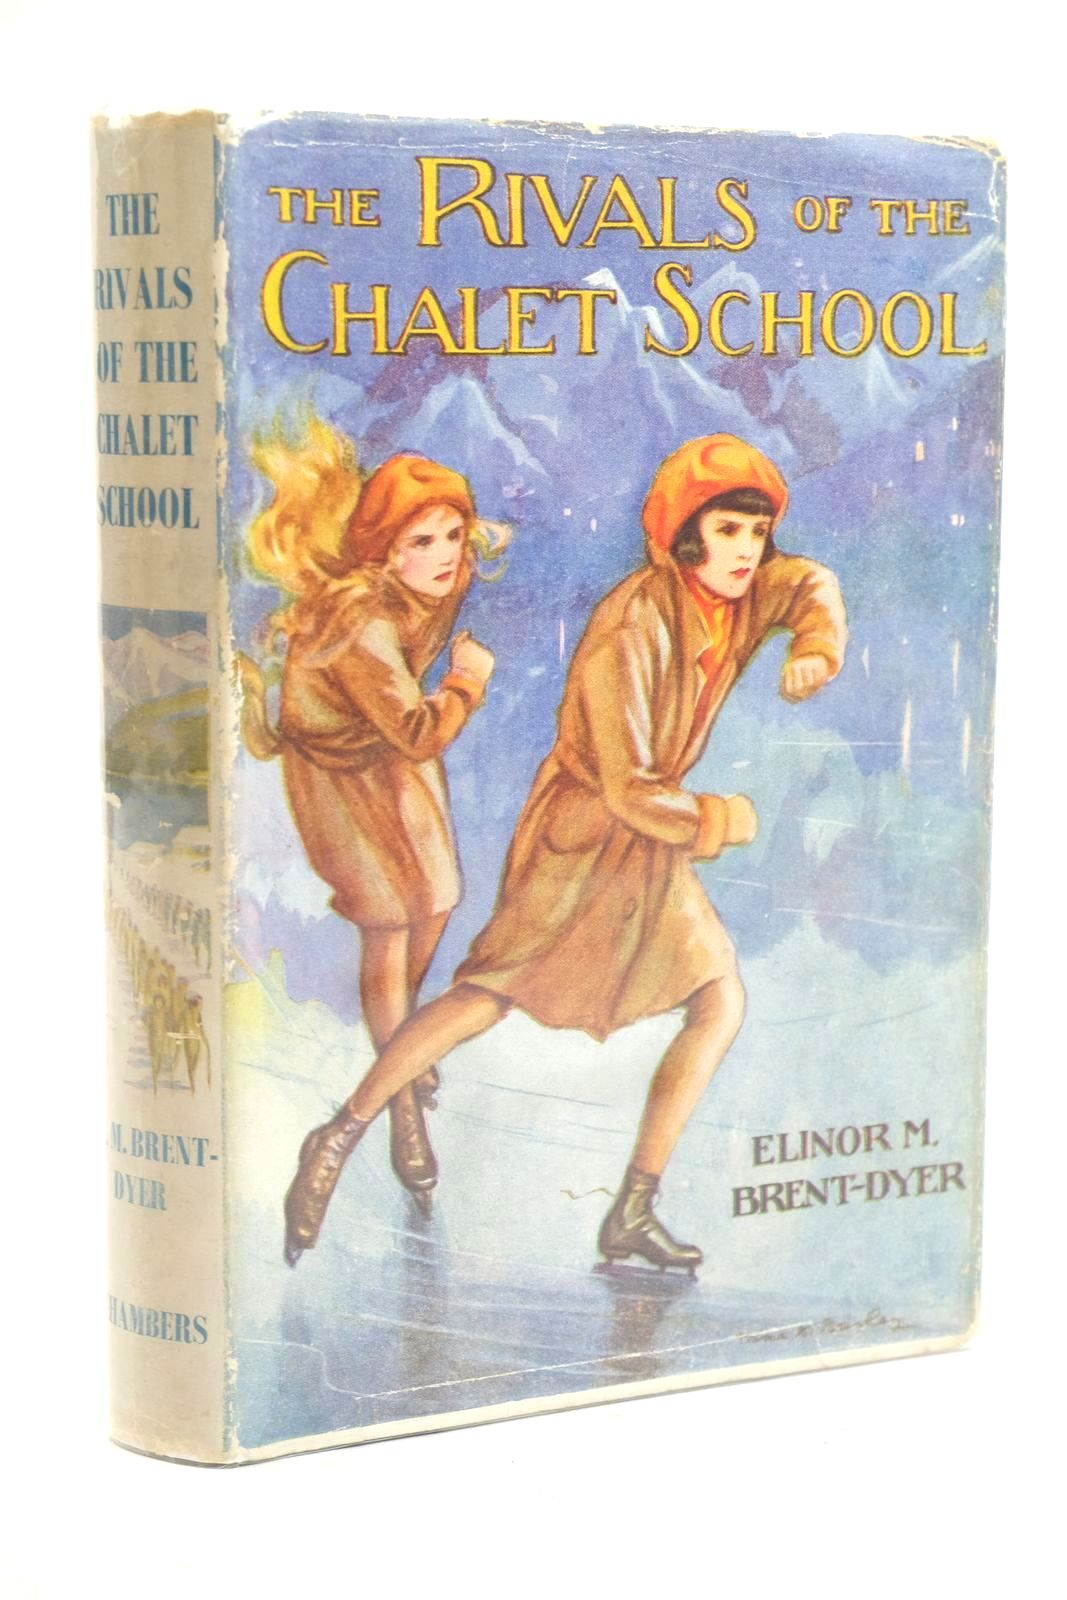 Photo of THE RIVALS OF THE CHALET SCHOOL- Stock Number: 1320043